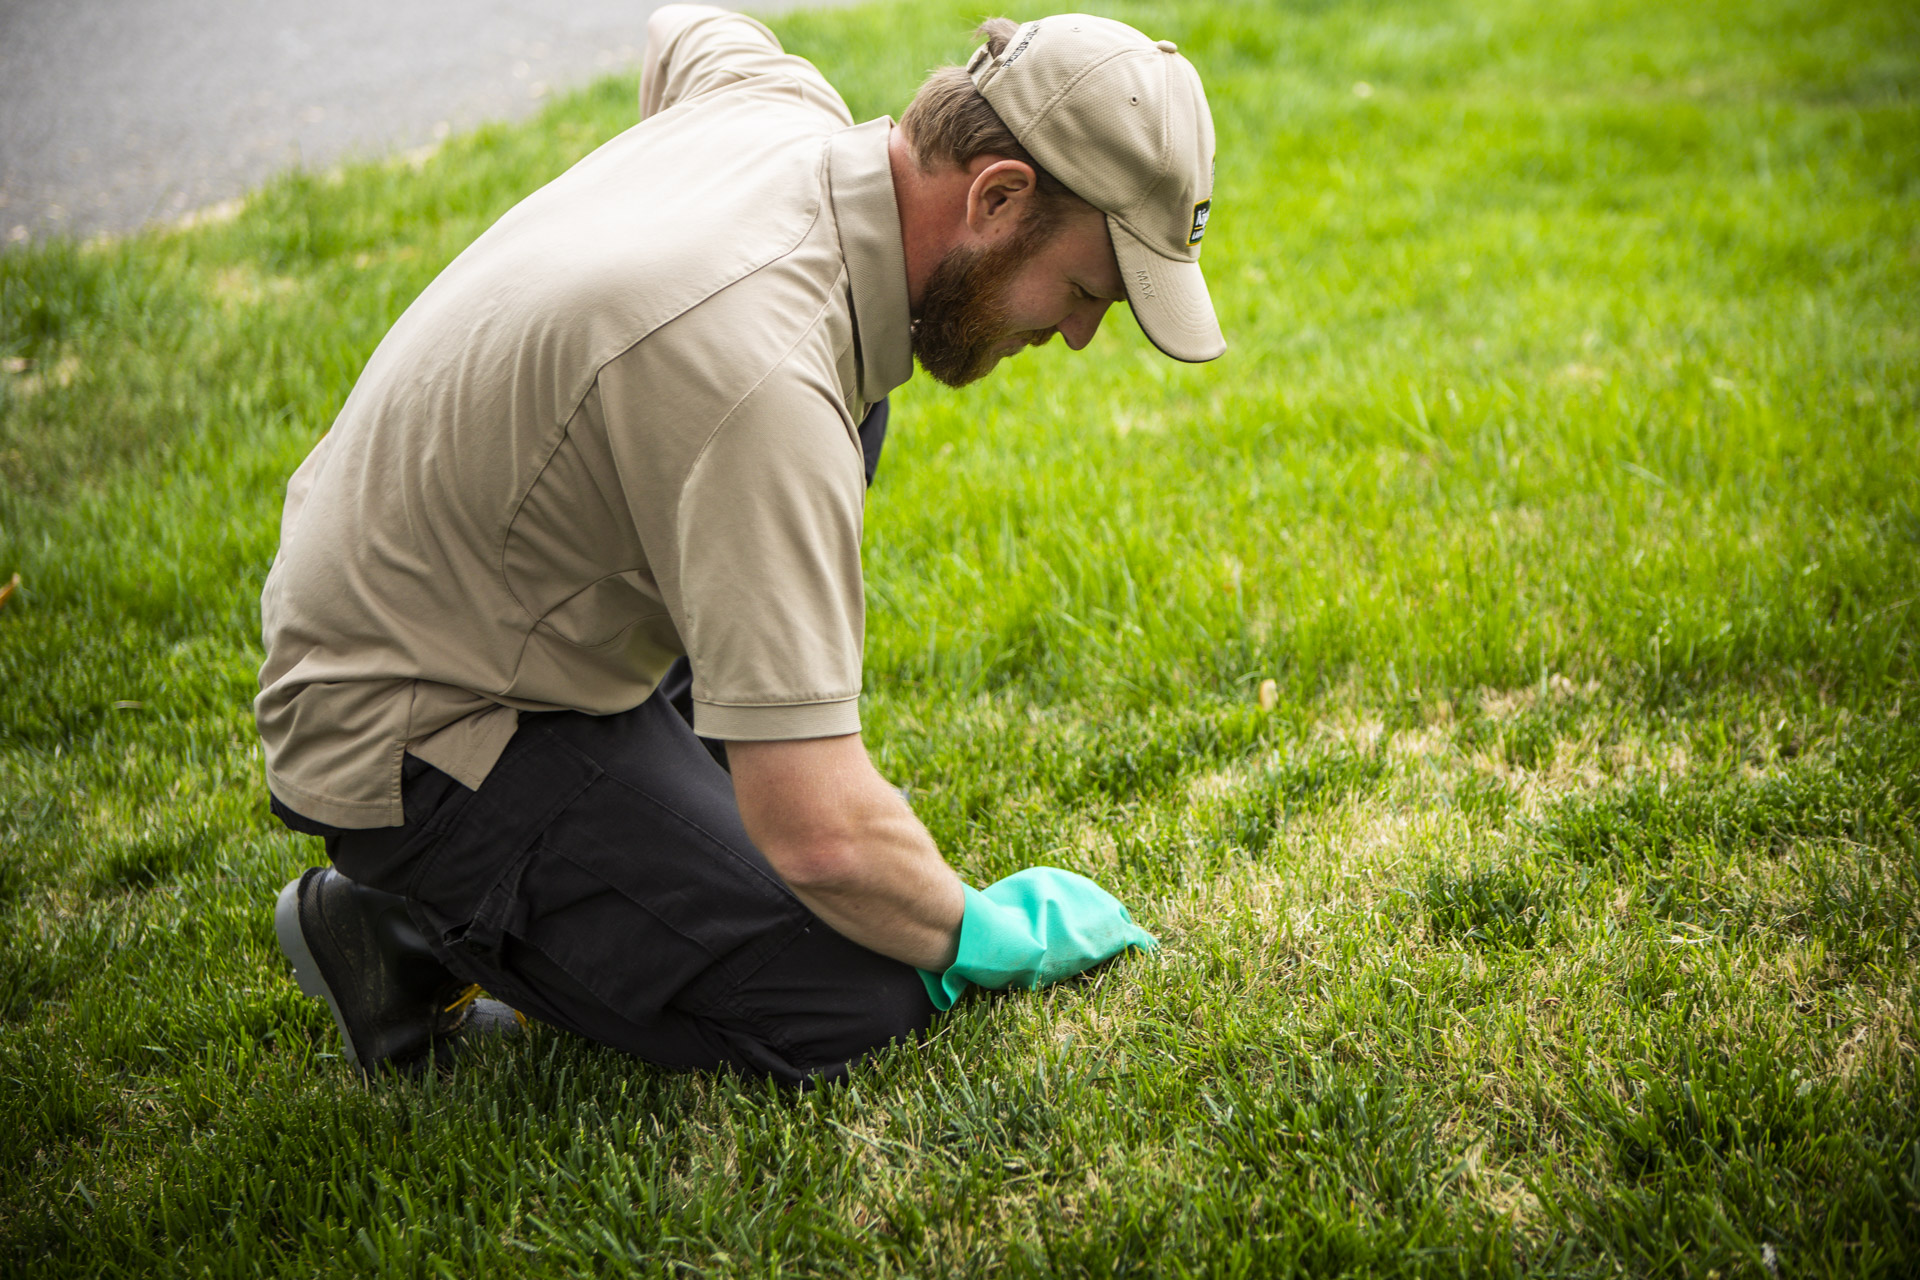 Lawn care professional inspecting lawn